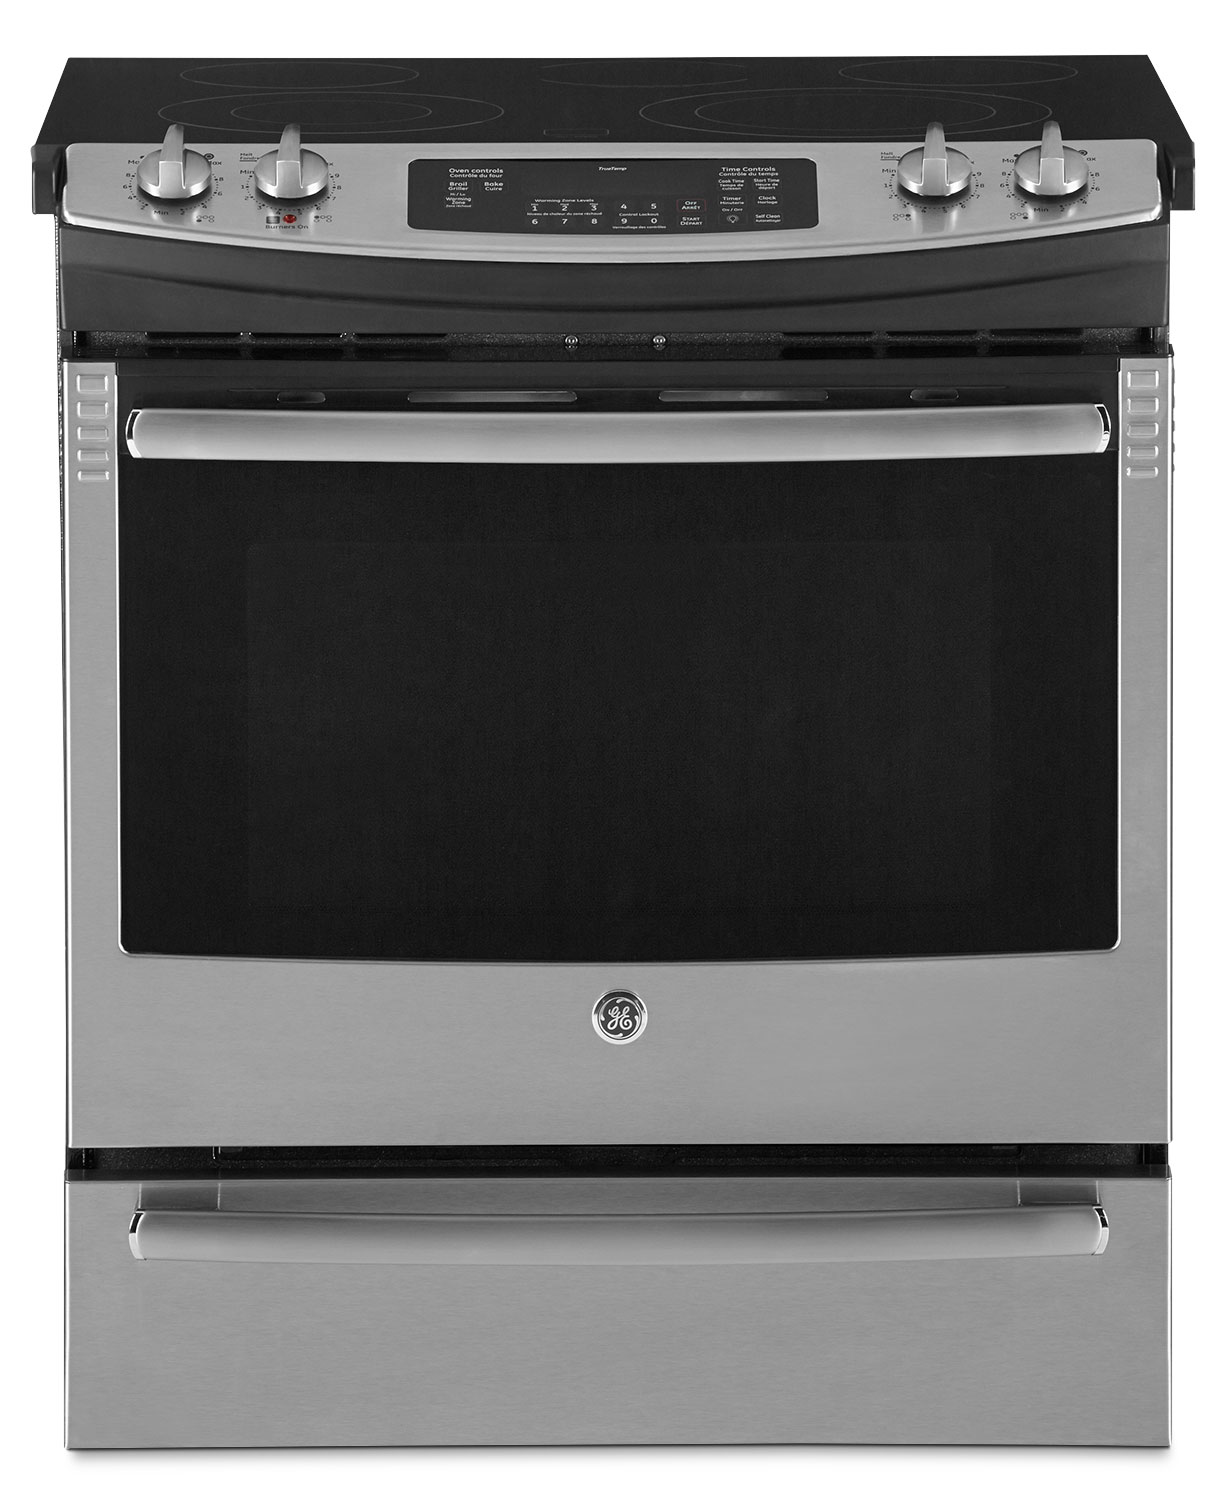 GE Slide-In Electric Range JCS630SFSS